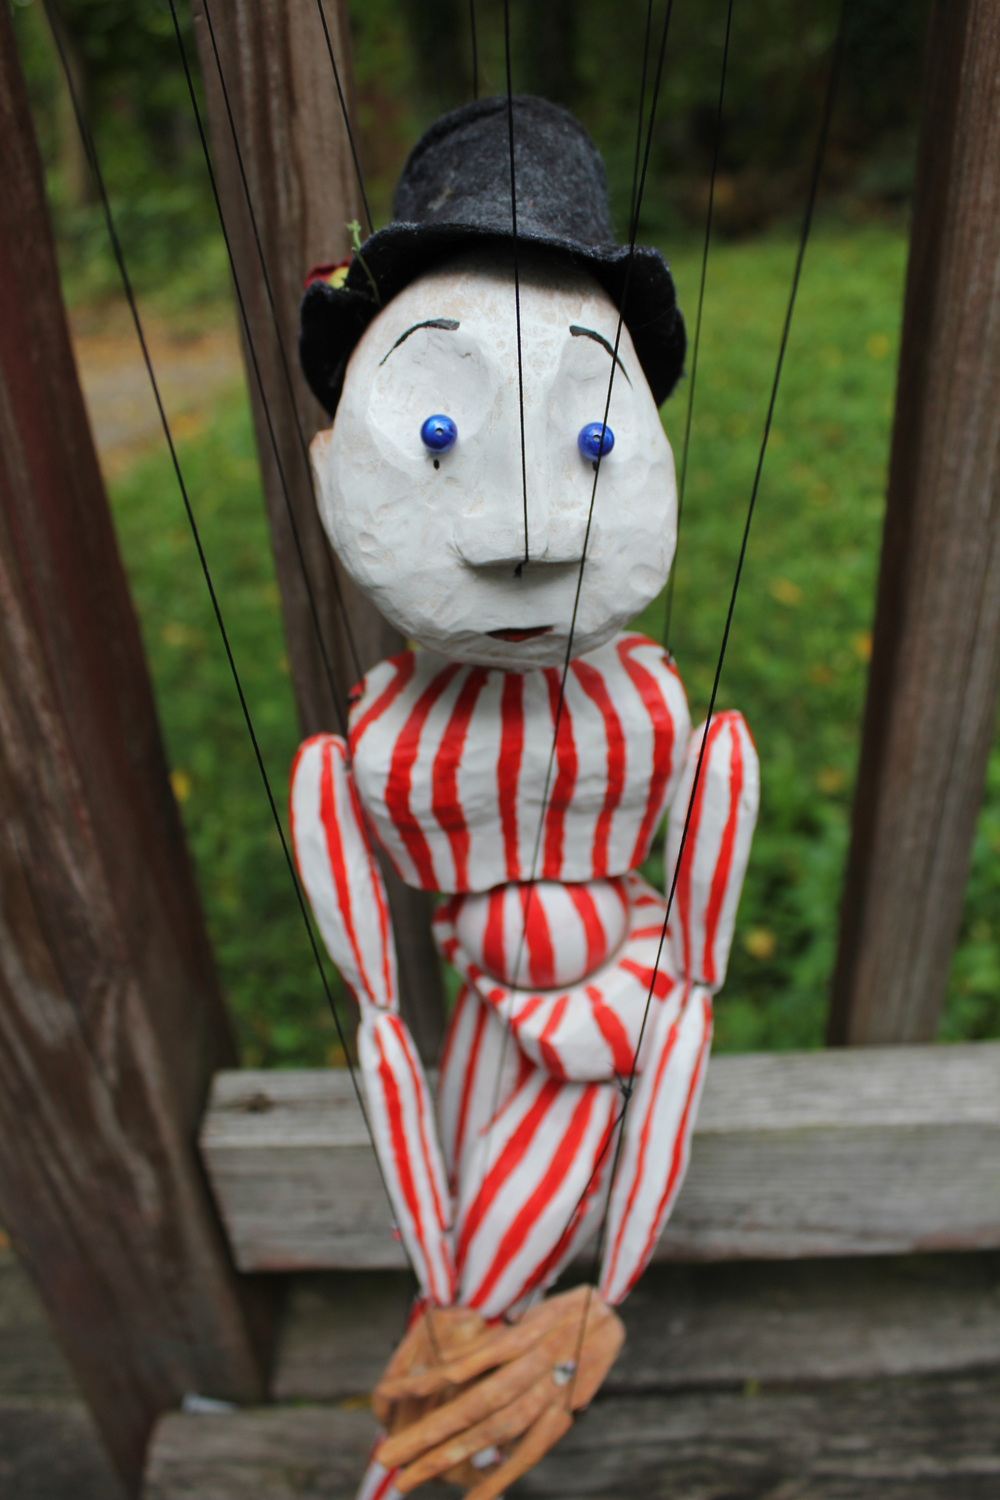 Photoshoot clown marionette.jpg